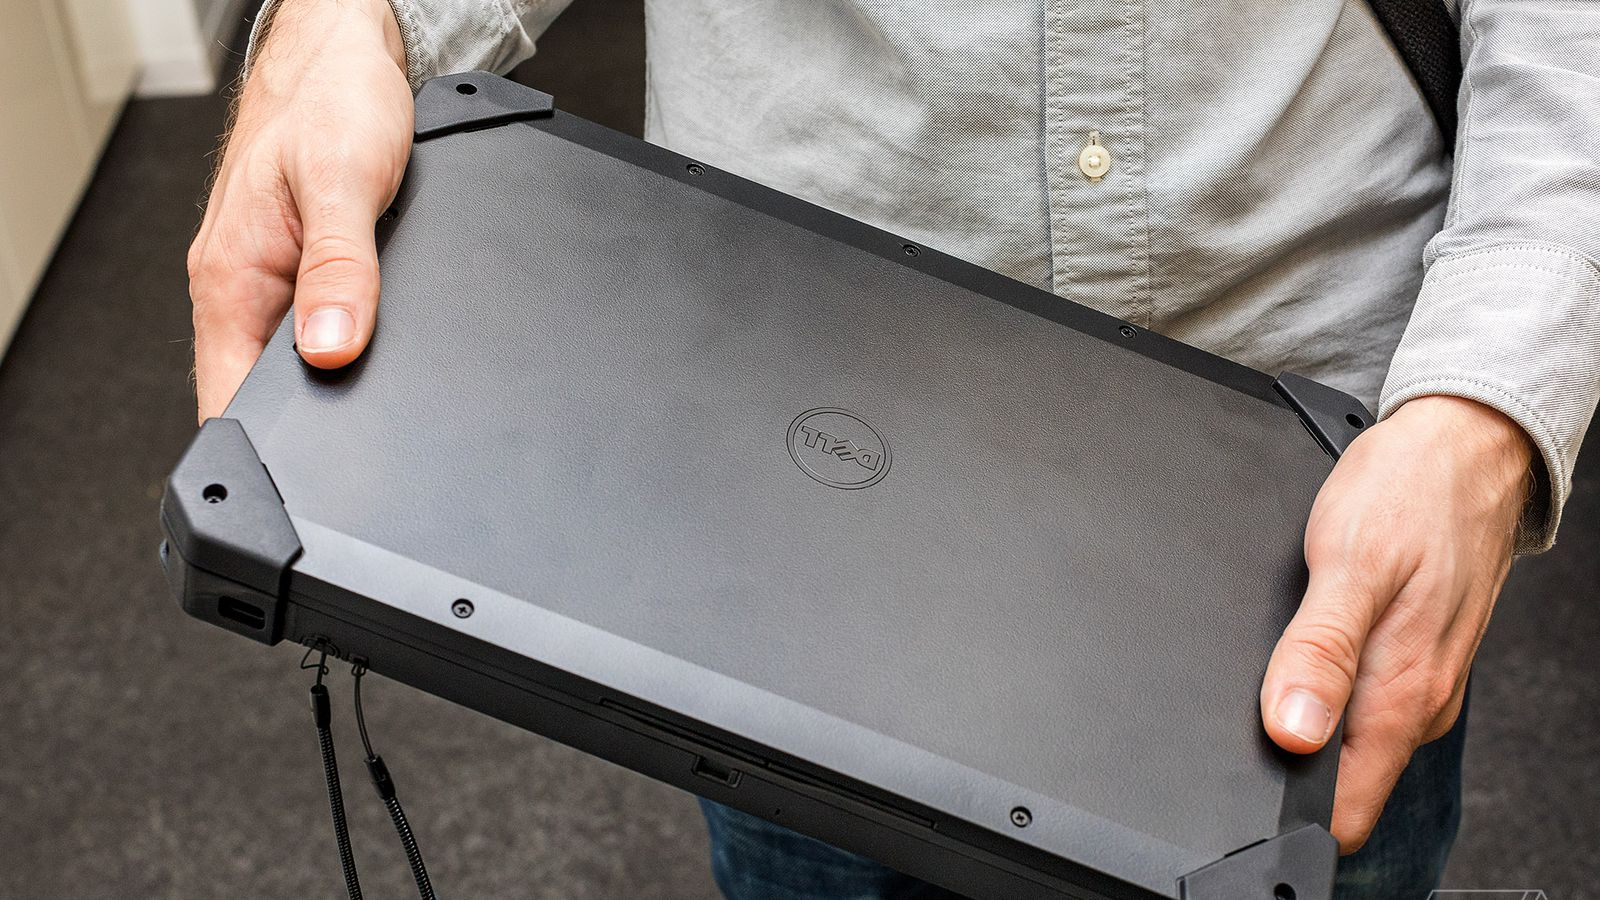 Dell's New Rugged Tablet is a Clunky Giant that Runs Windows 7